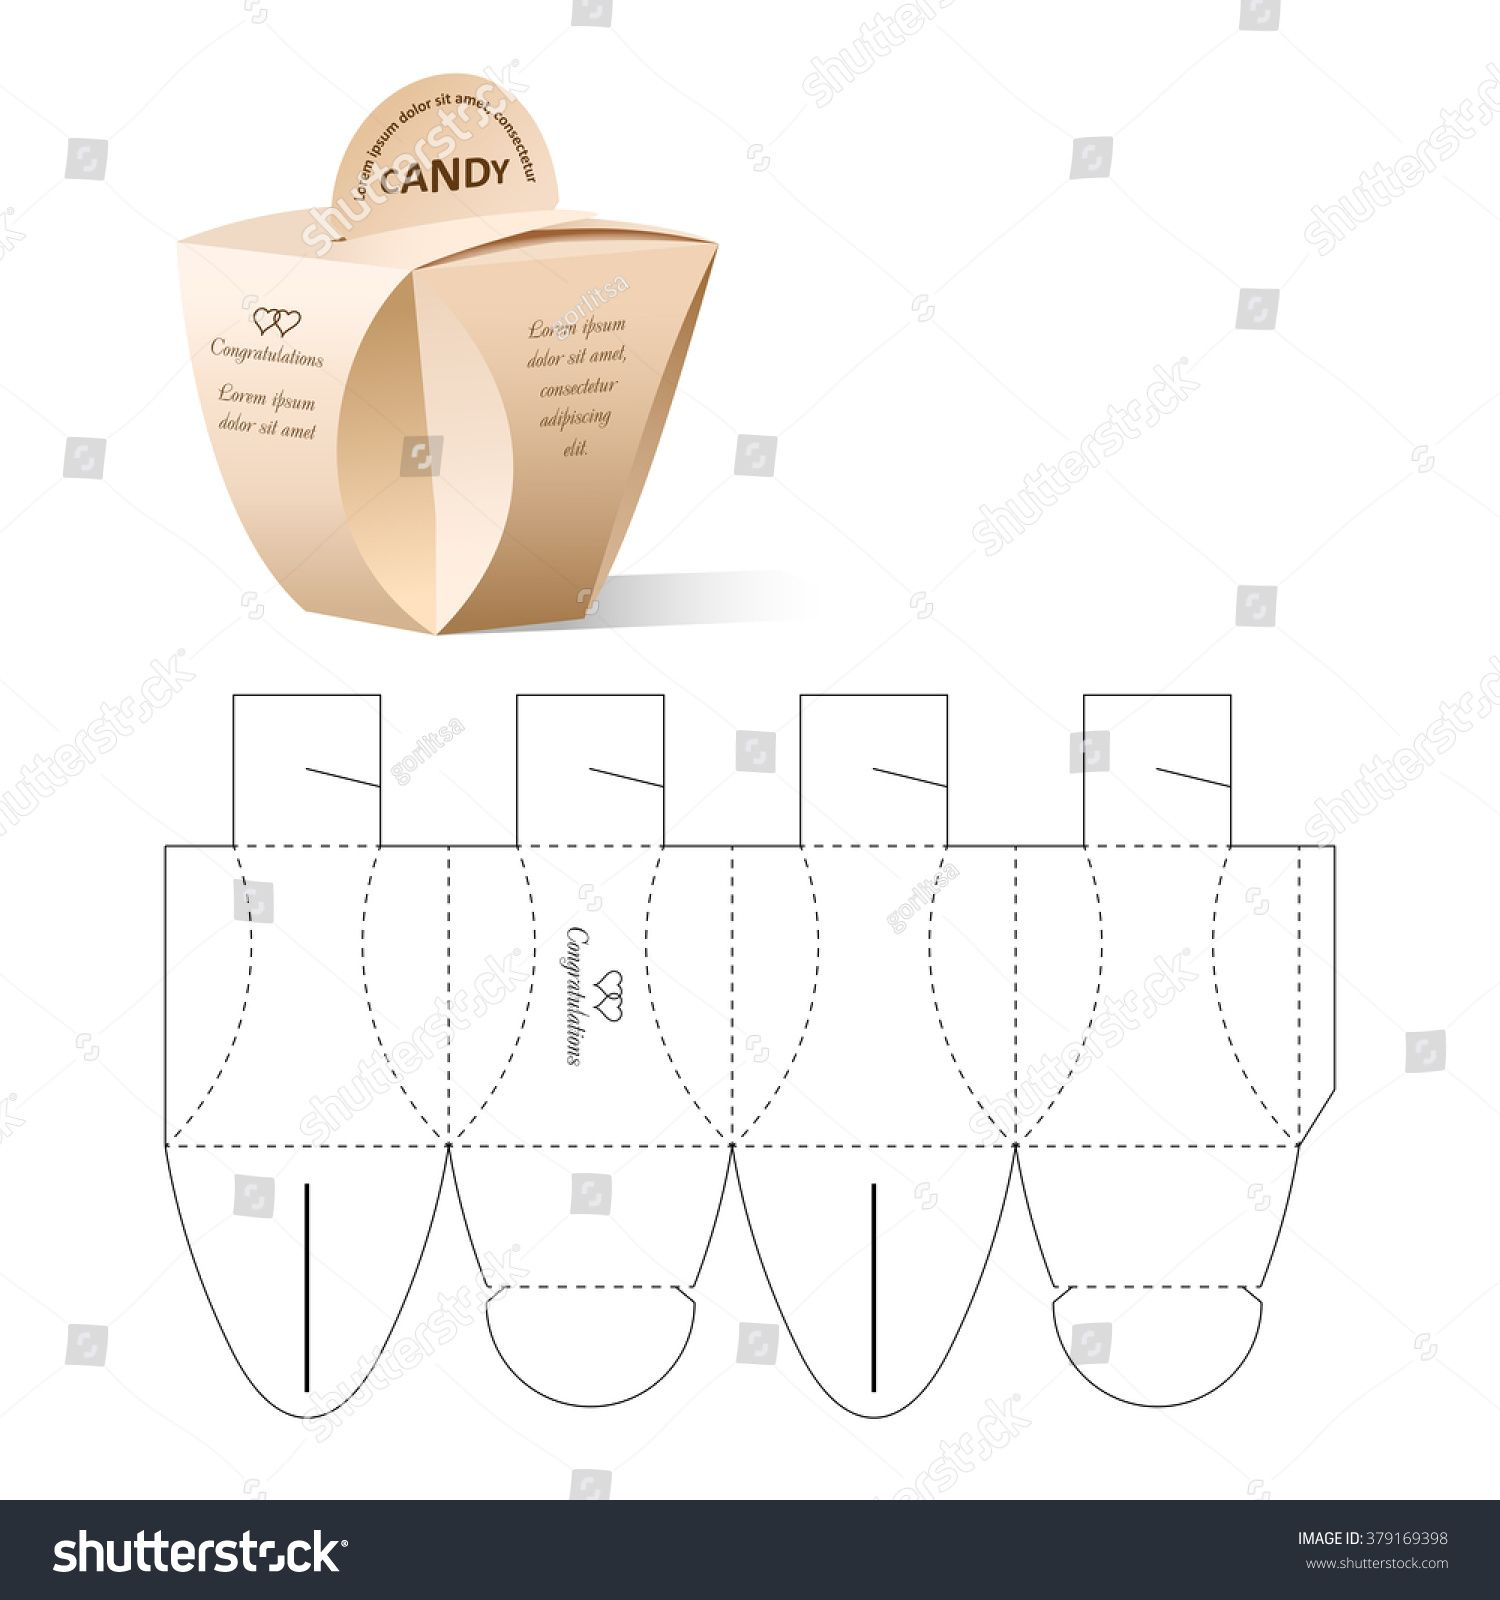 Packaging Template Vectors Photos and PSD files